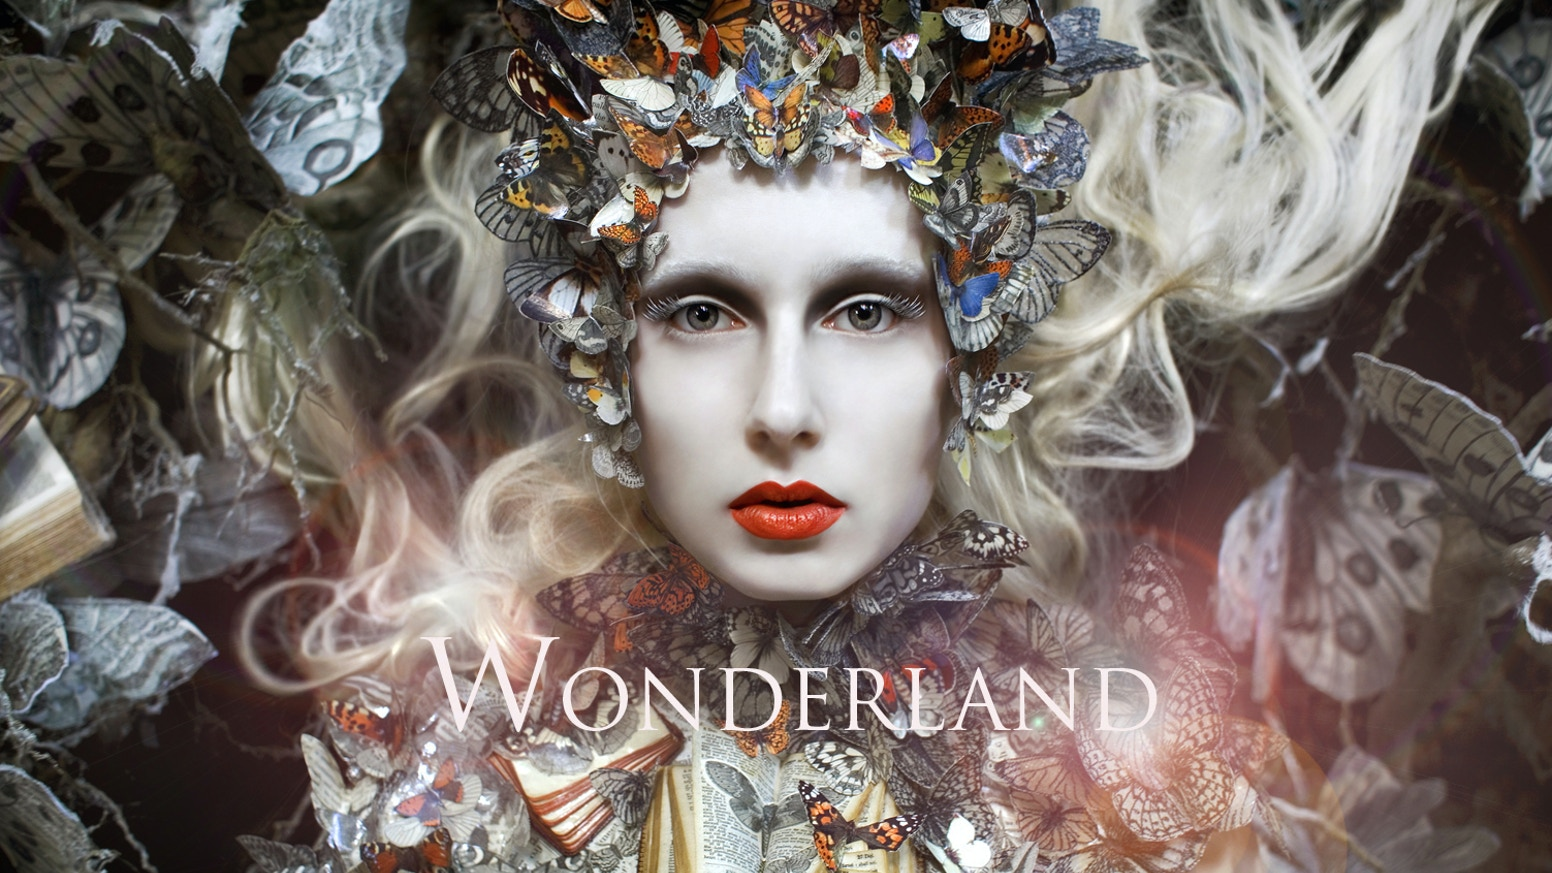 The highly anticipated photo book of the award-winning 'Wonderland' series, by British fine art photographer Kirsty Mitchell.